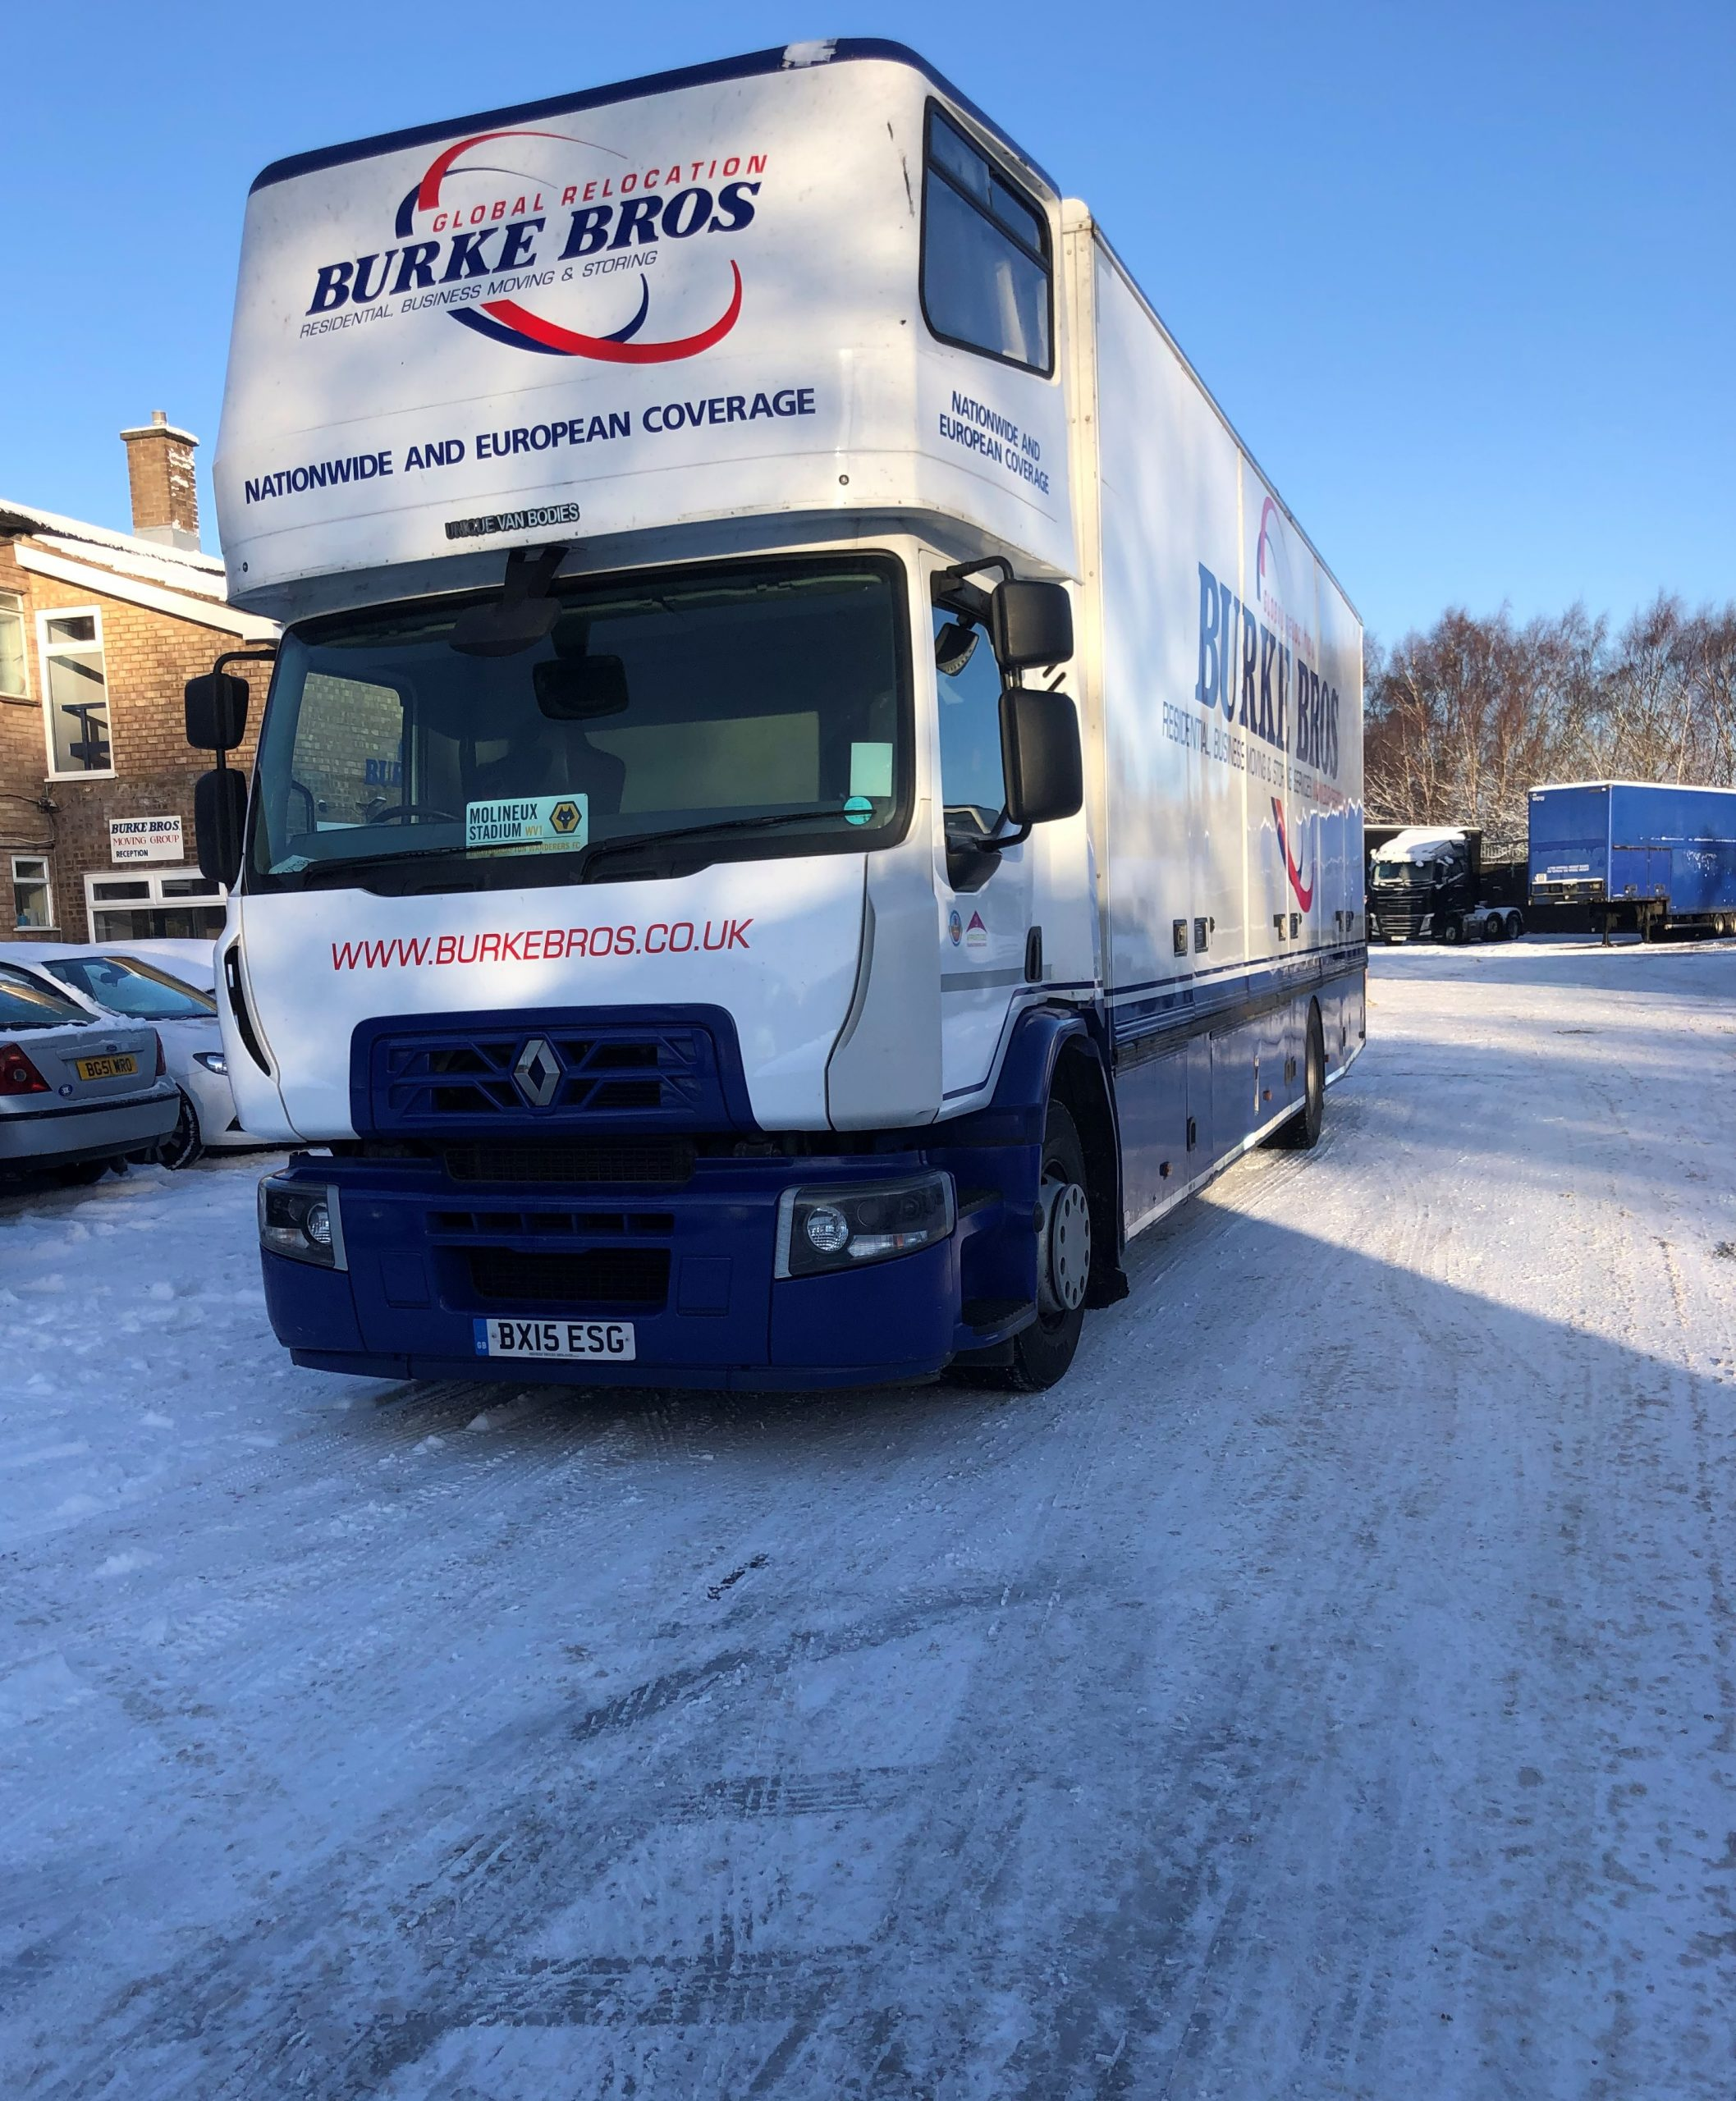 Removals van in snow ready to leave for France.